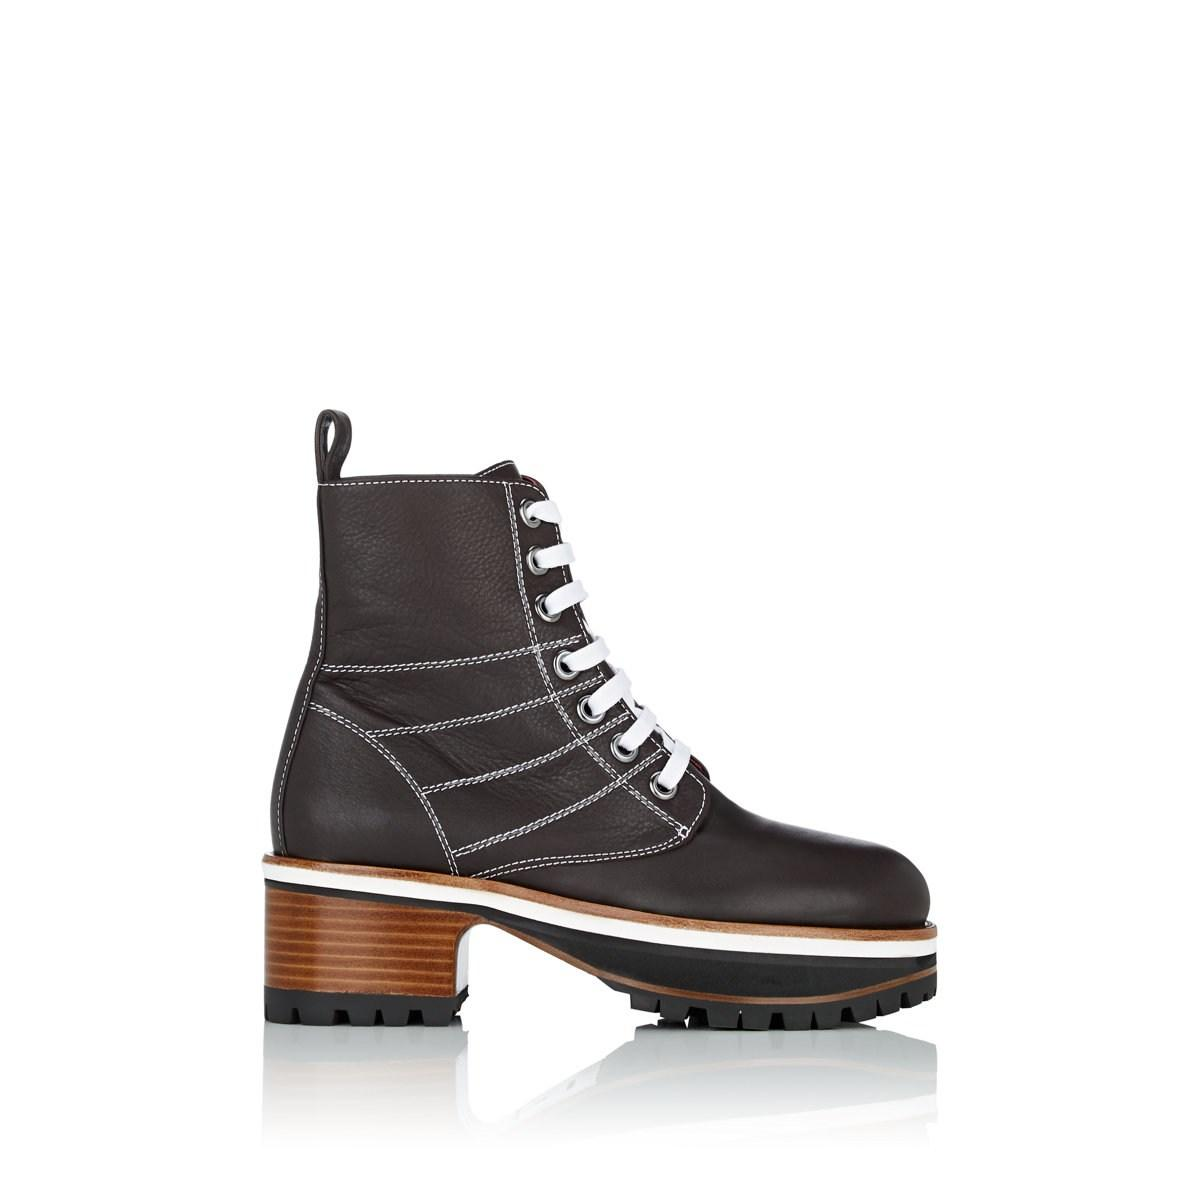 a7383dbb1153a Lyst - Sies Marjan Jessa Leather Combat Boot in Brown - Save 70%